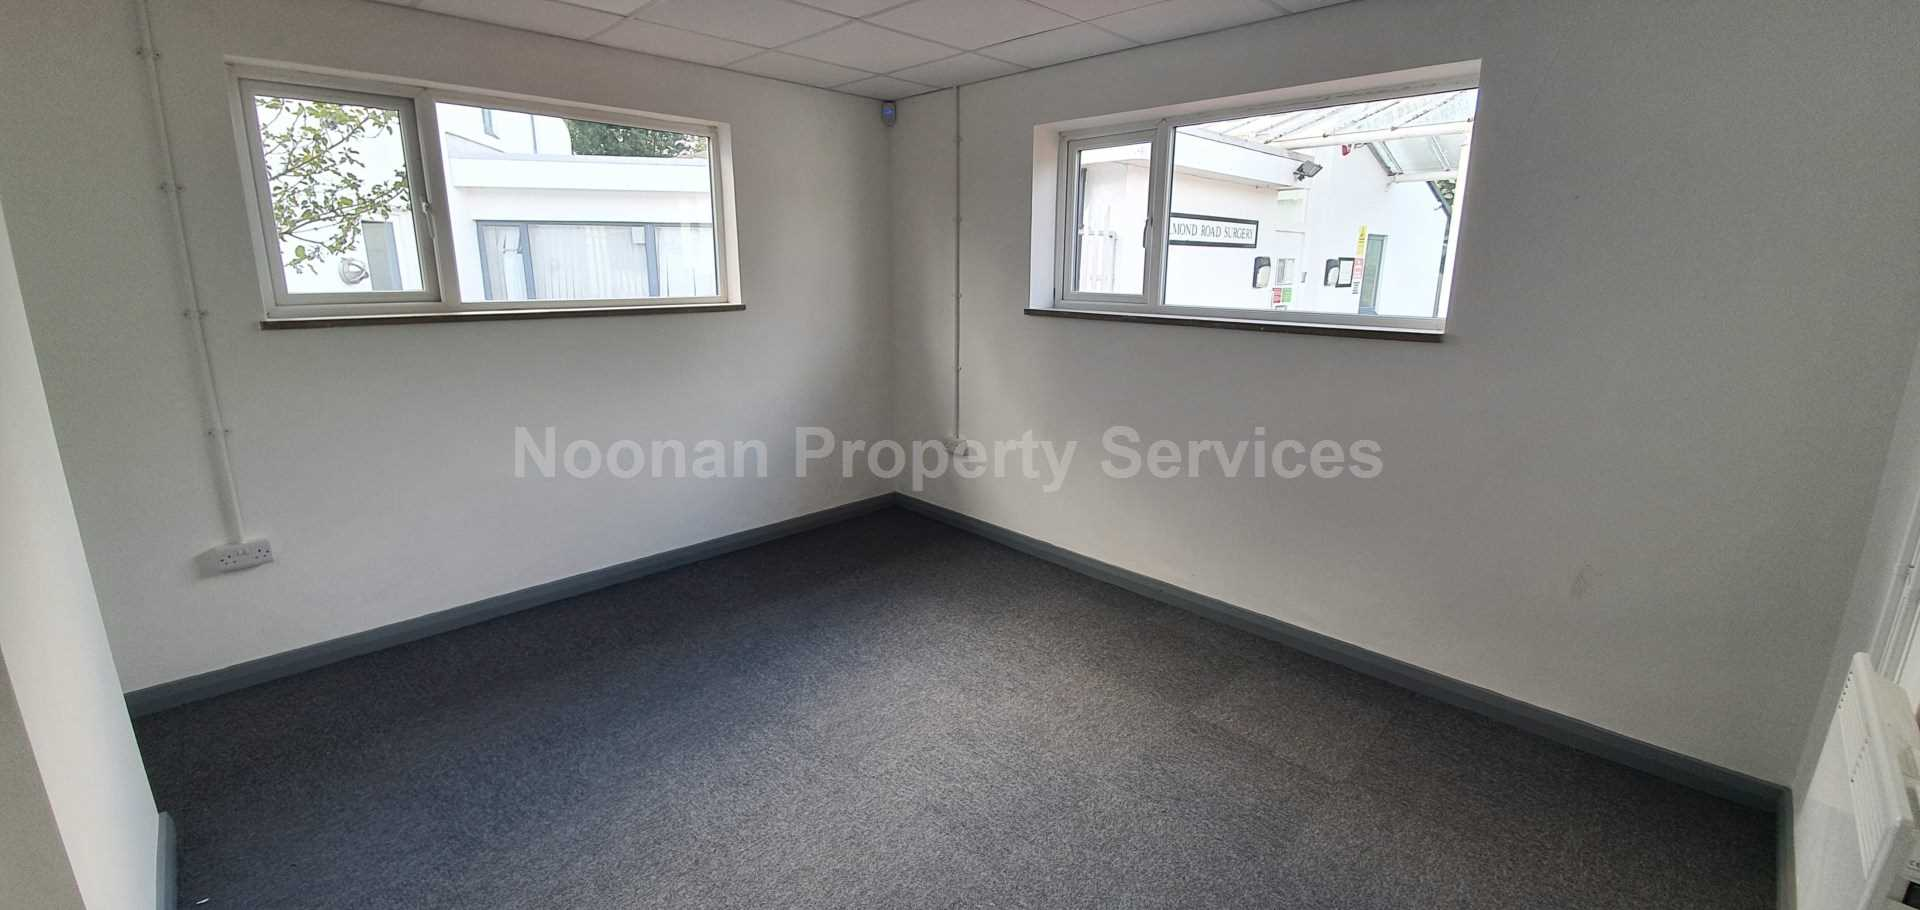 Almond Road, St Neots, Image 3